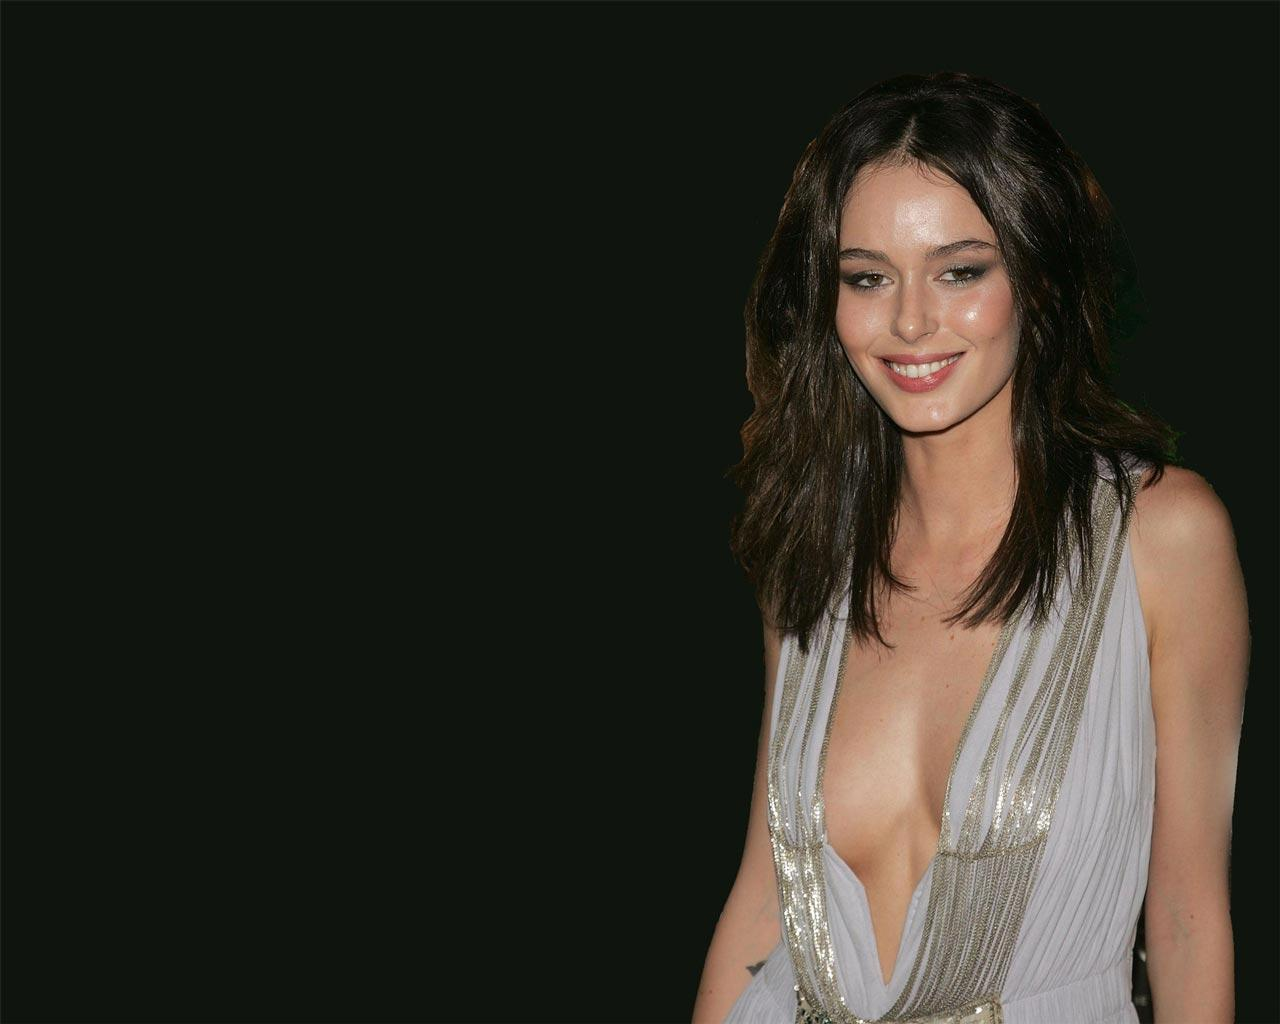 Nicole Trunfio -  Wallpaper #3 1280 x 1024